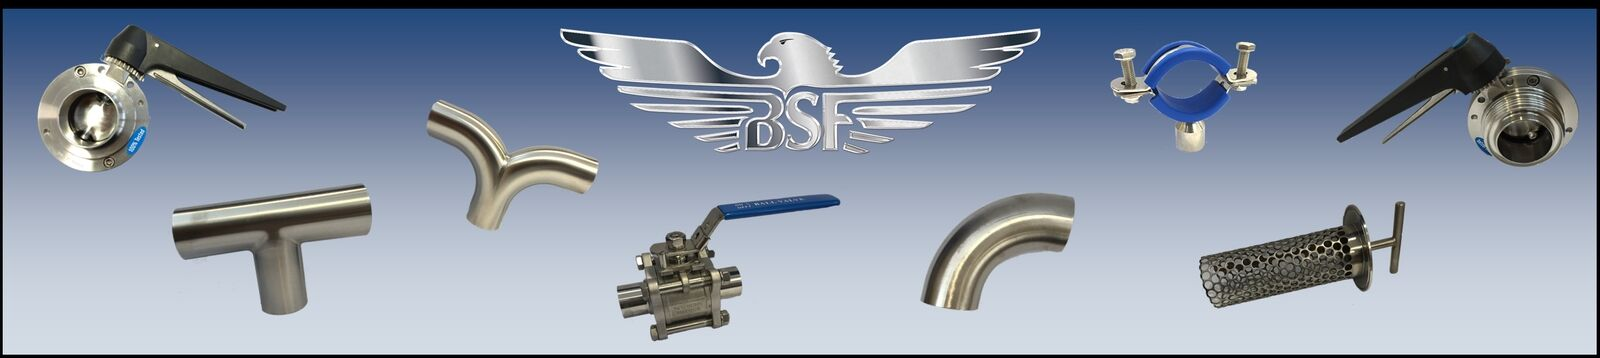 Berkeley Stainless Fittings Ltd